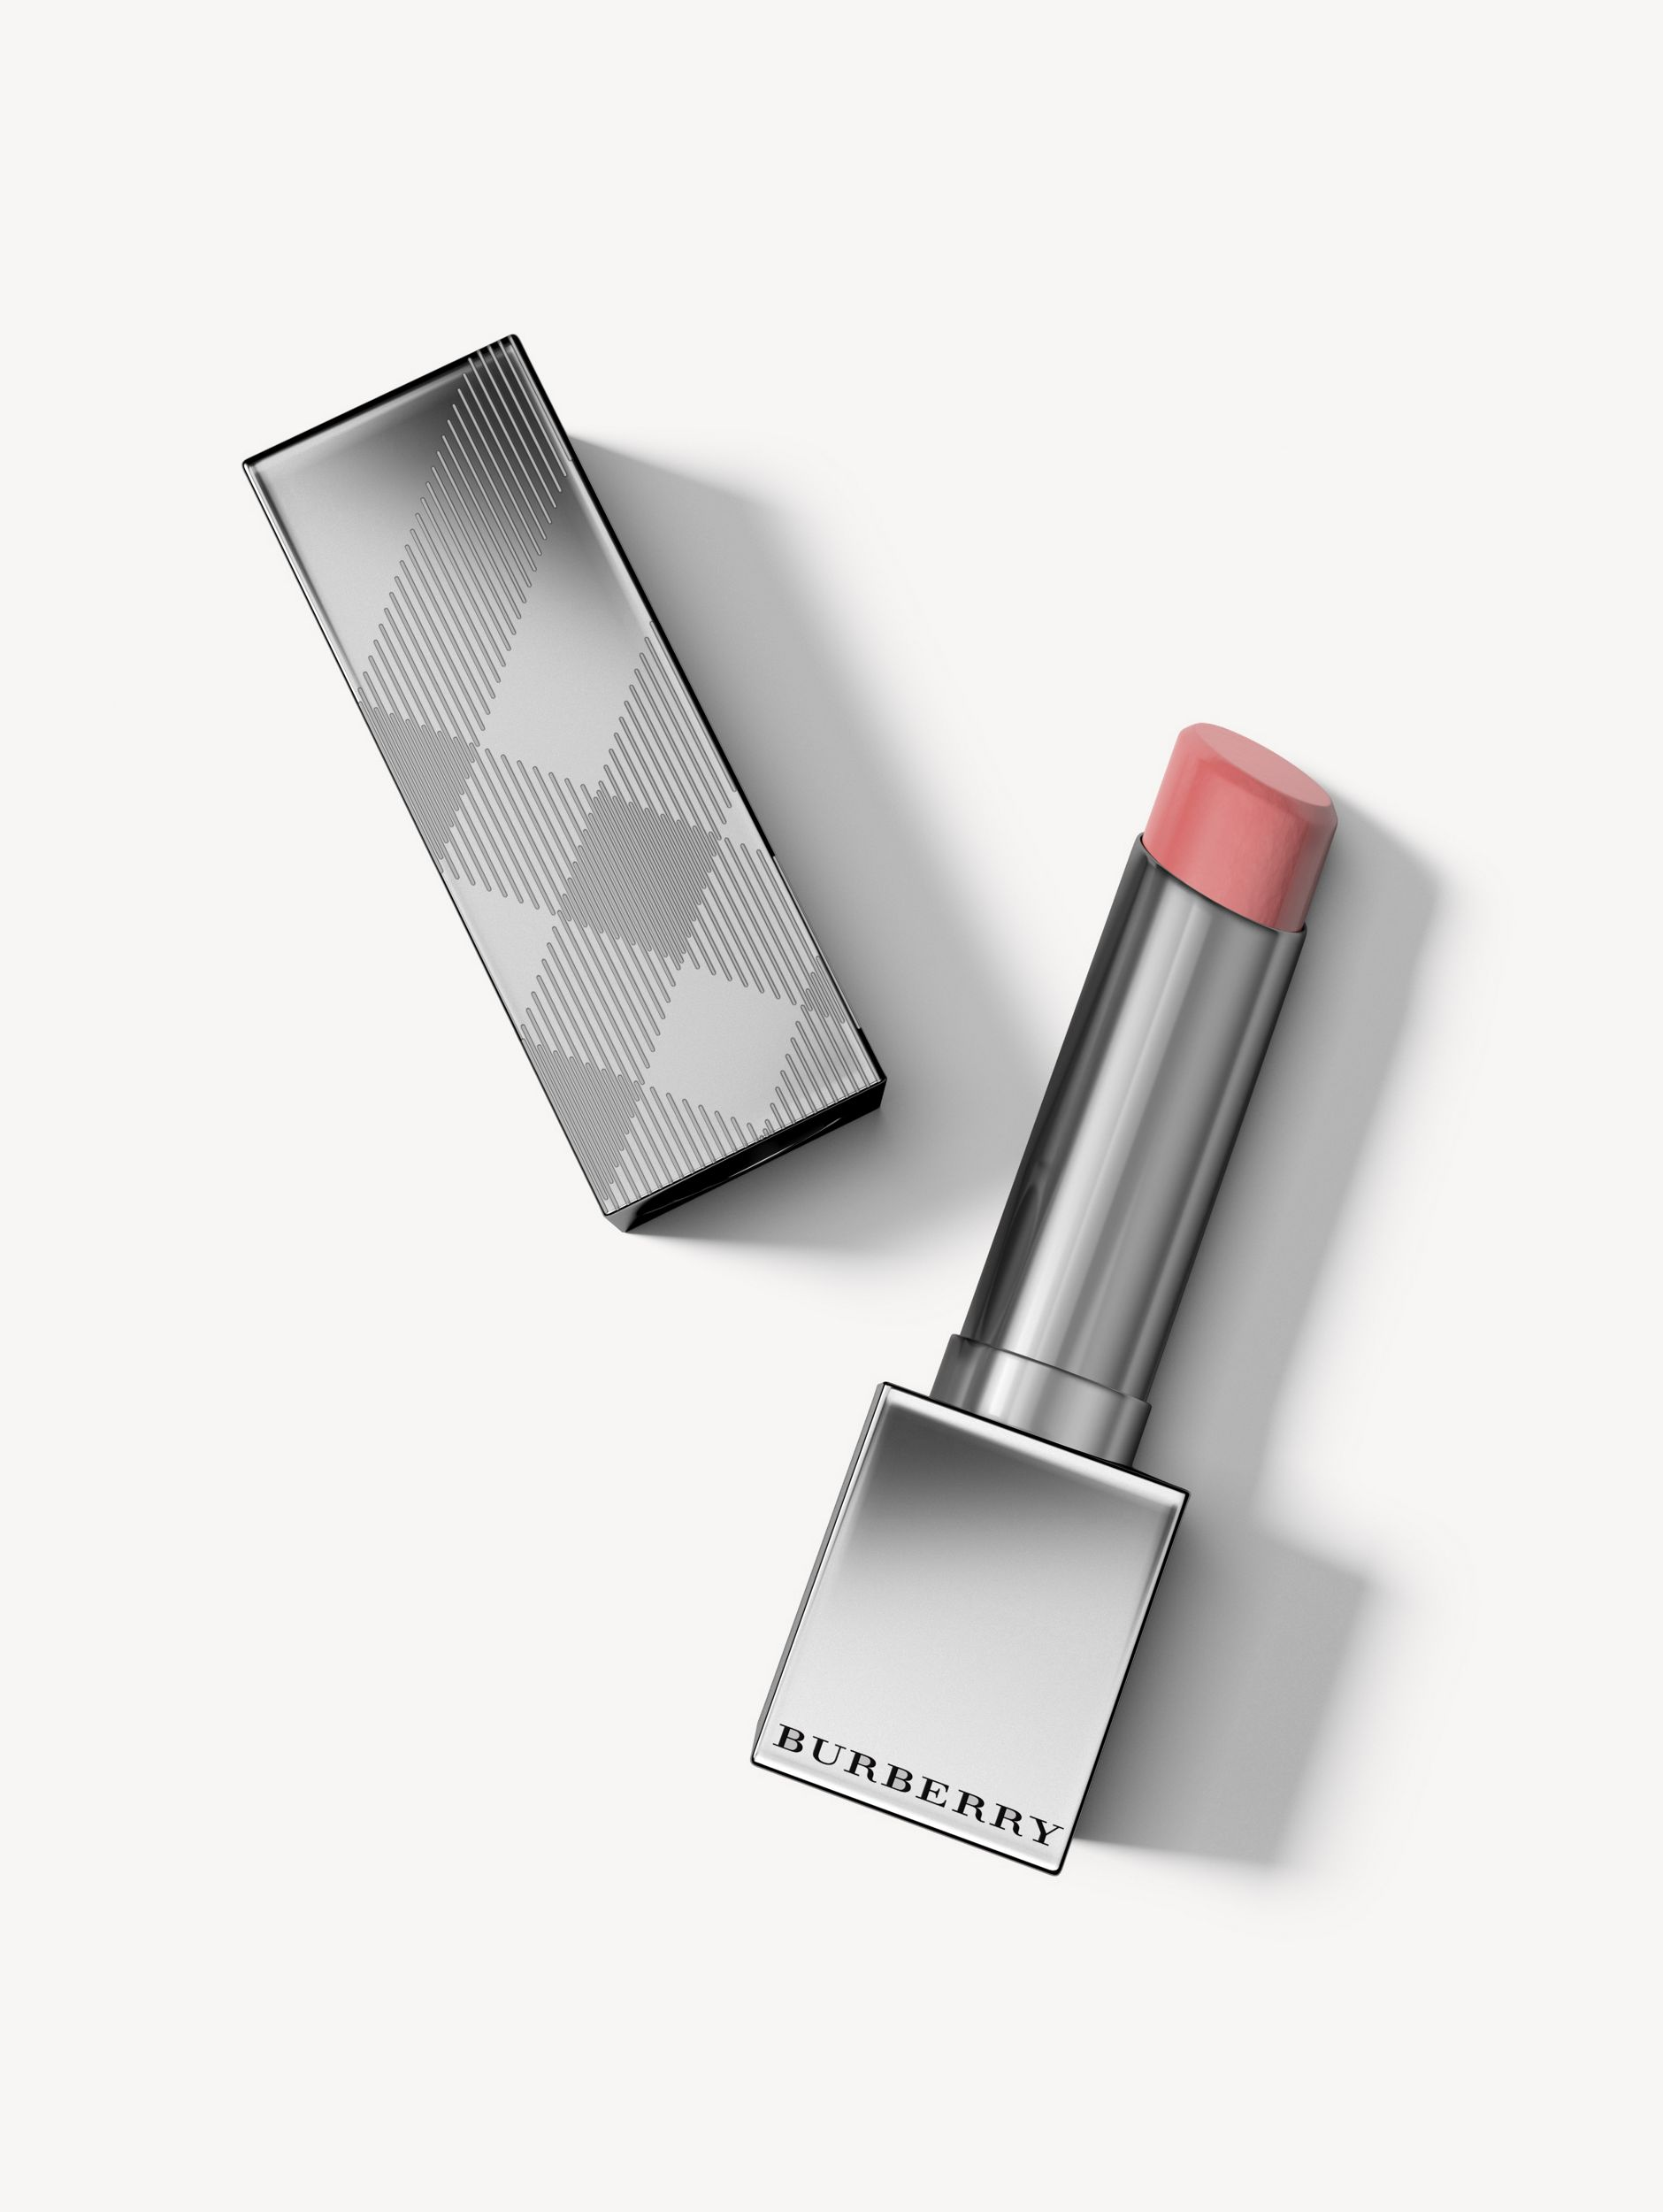 Burberry Kisses Sheer – Orchid Pink No.213 - Women | Burberry - 1